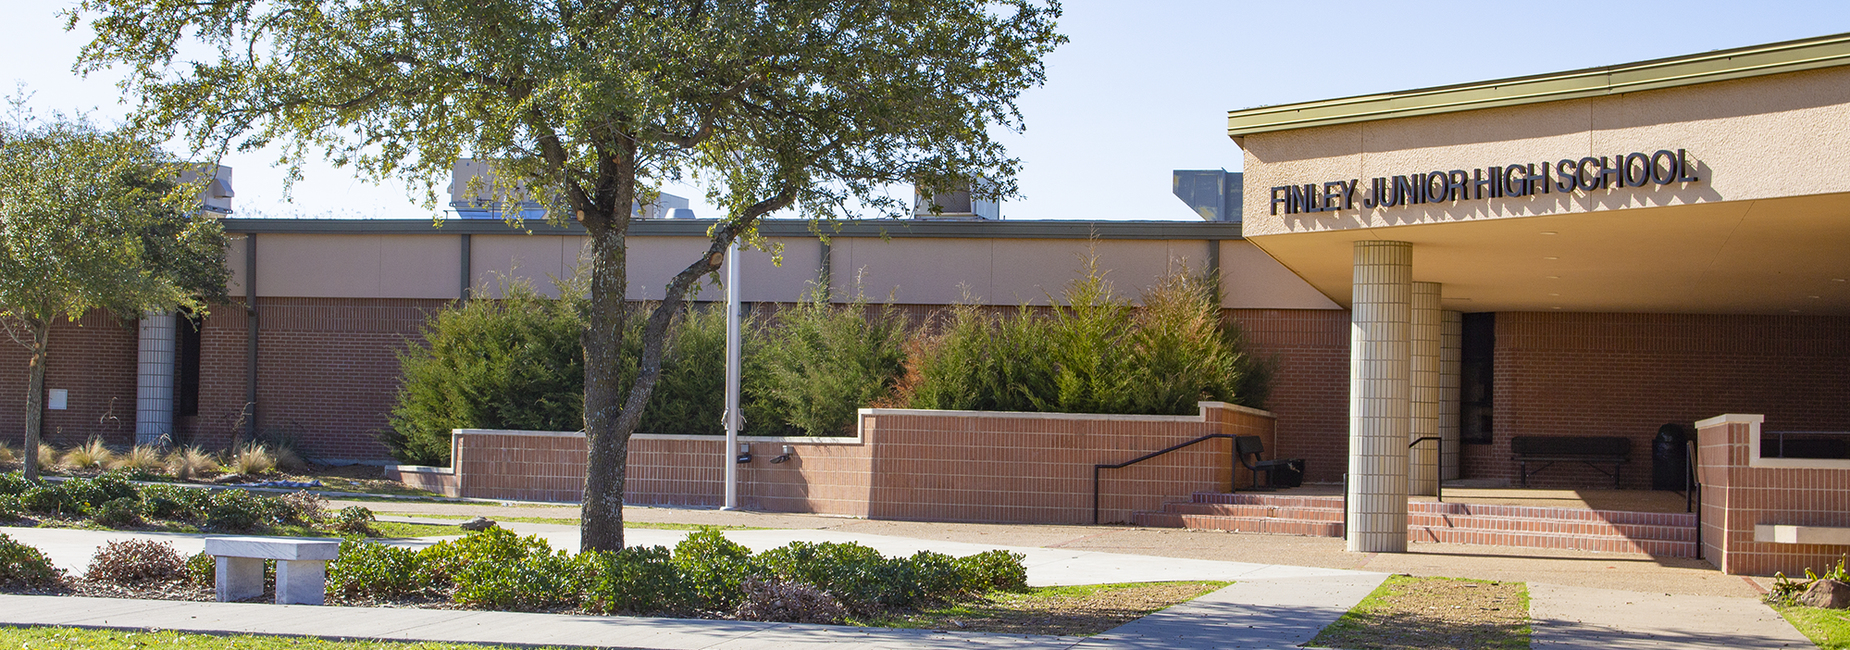 exterior view of campus entrance